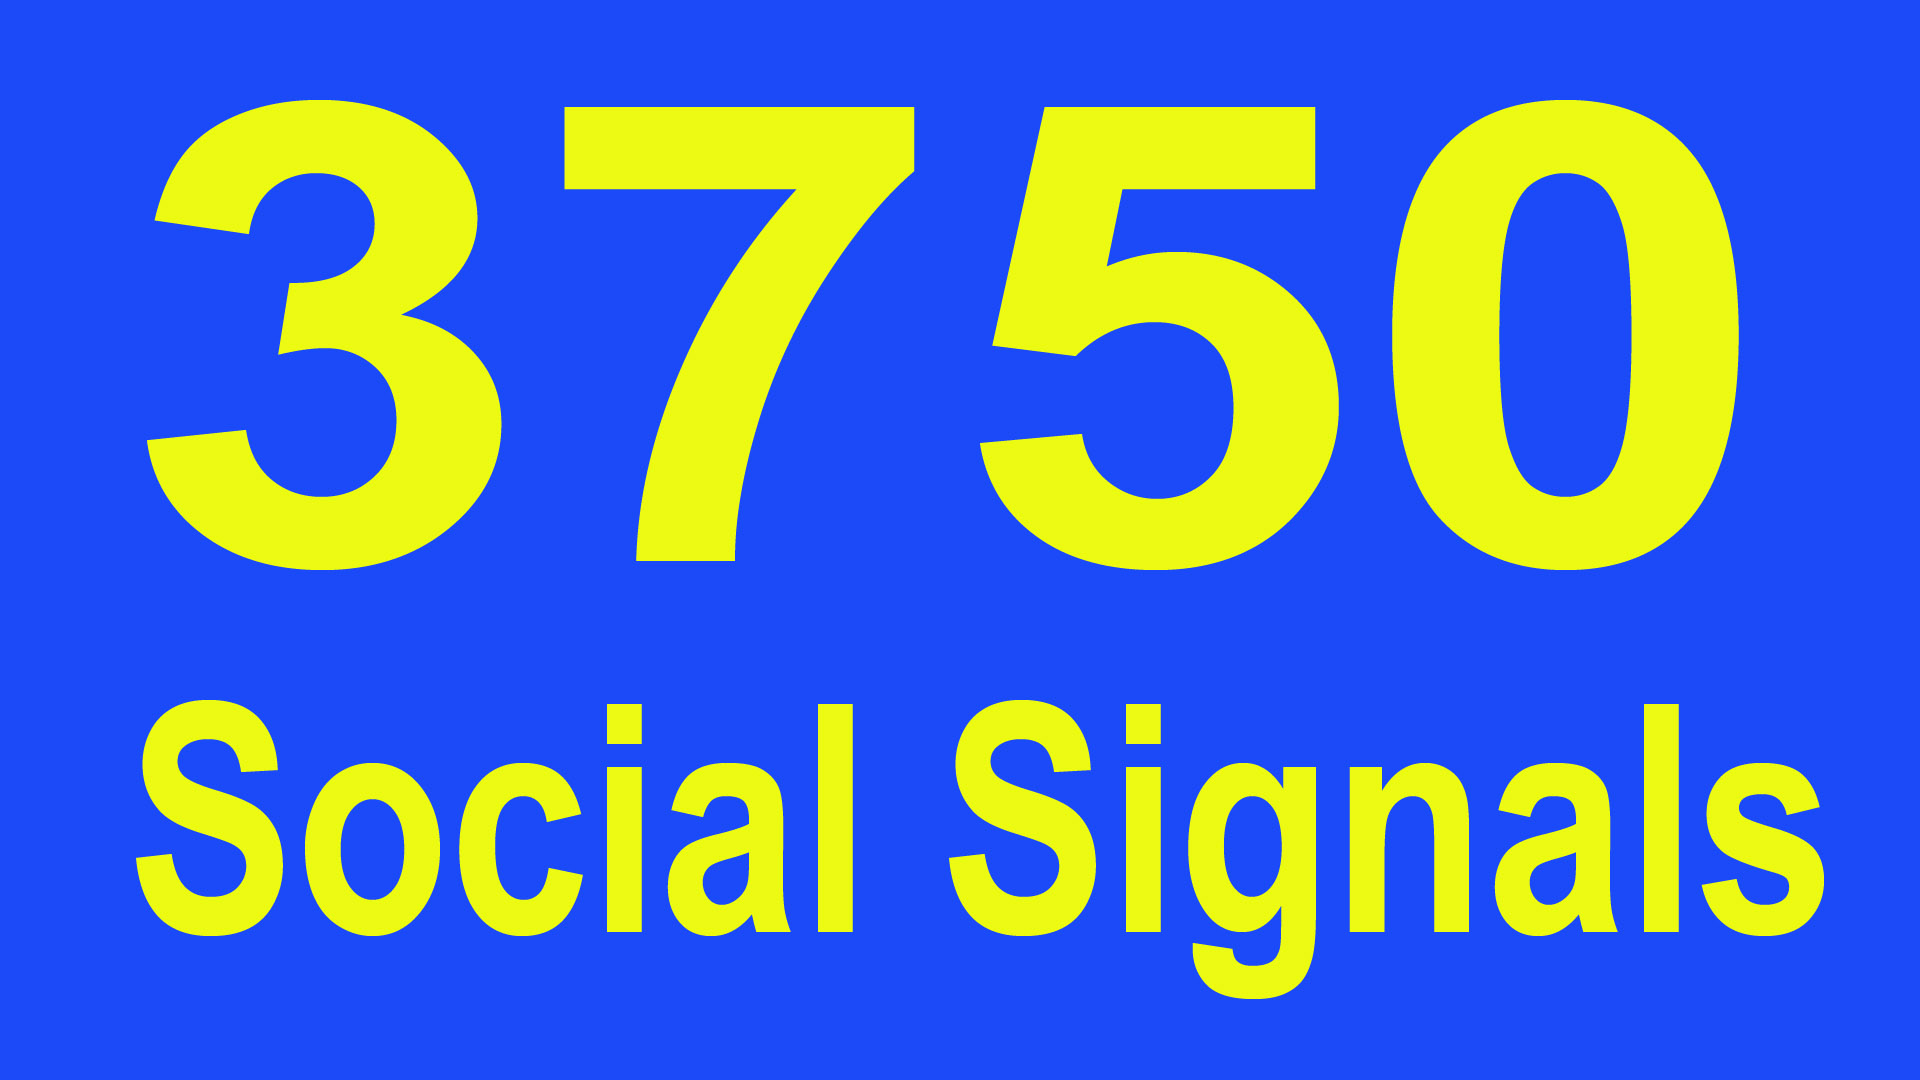 Powerfully built 3750 Social Shares Signals to heavy SEO help,  Best on Seocheckout